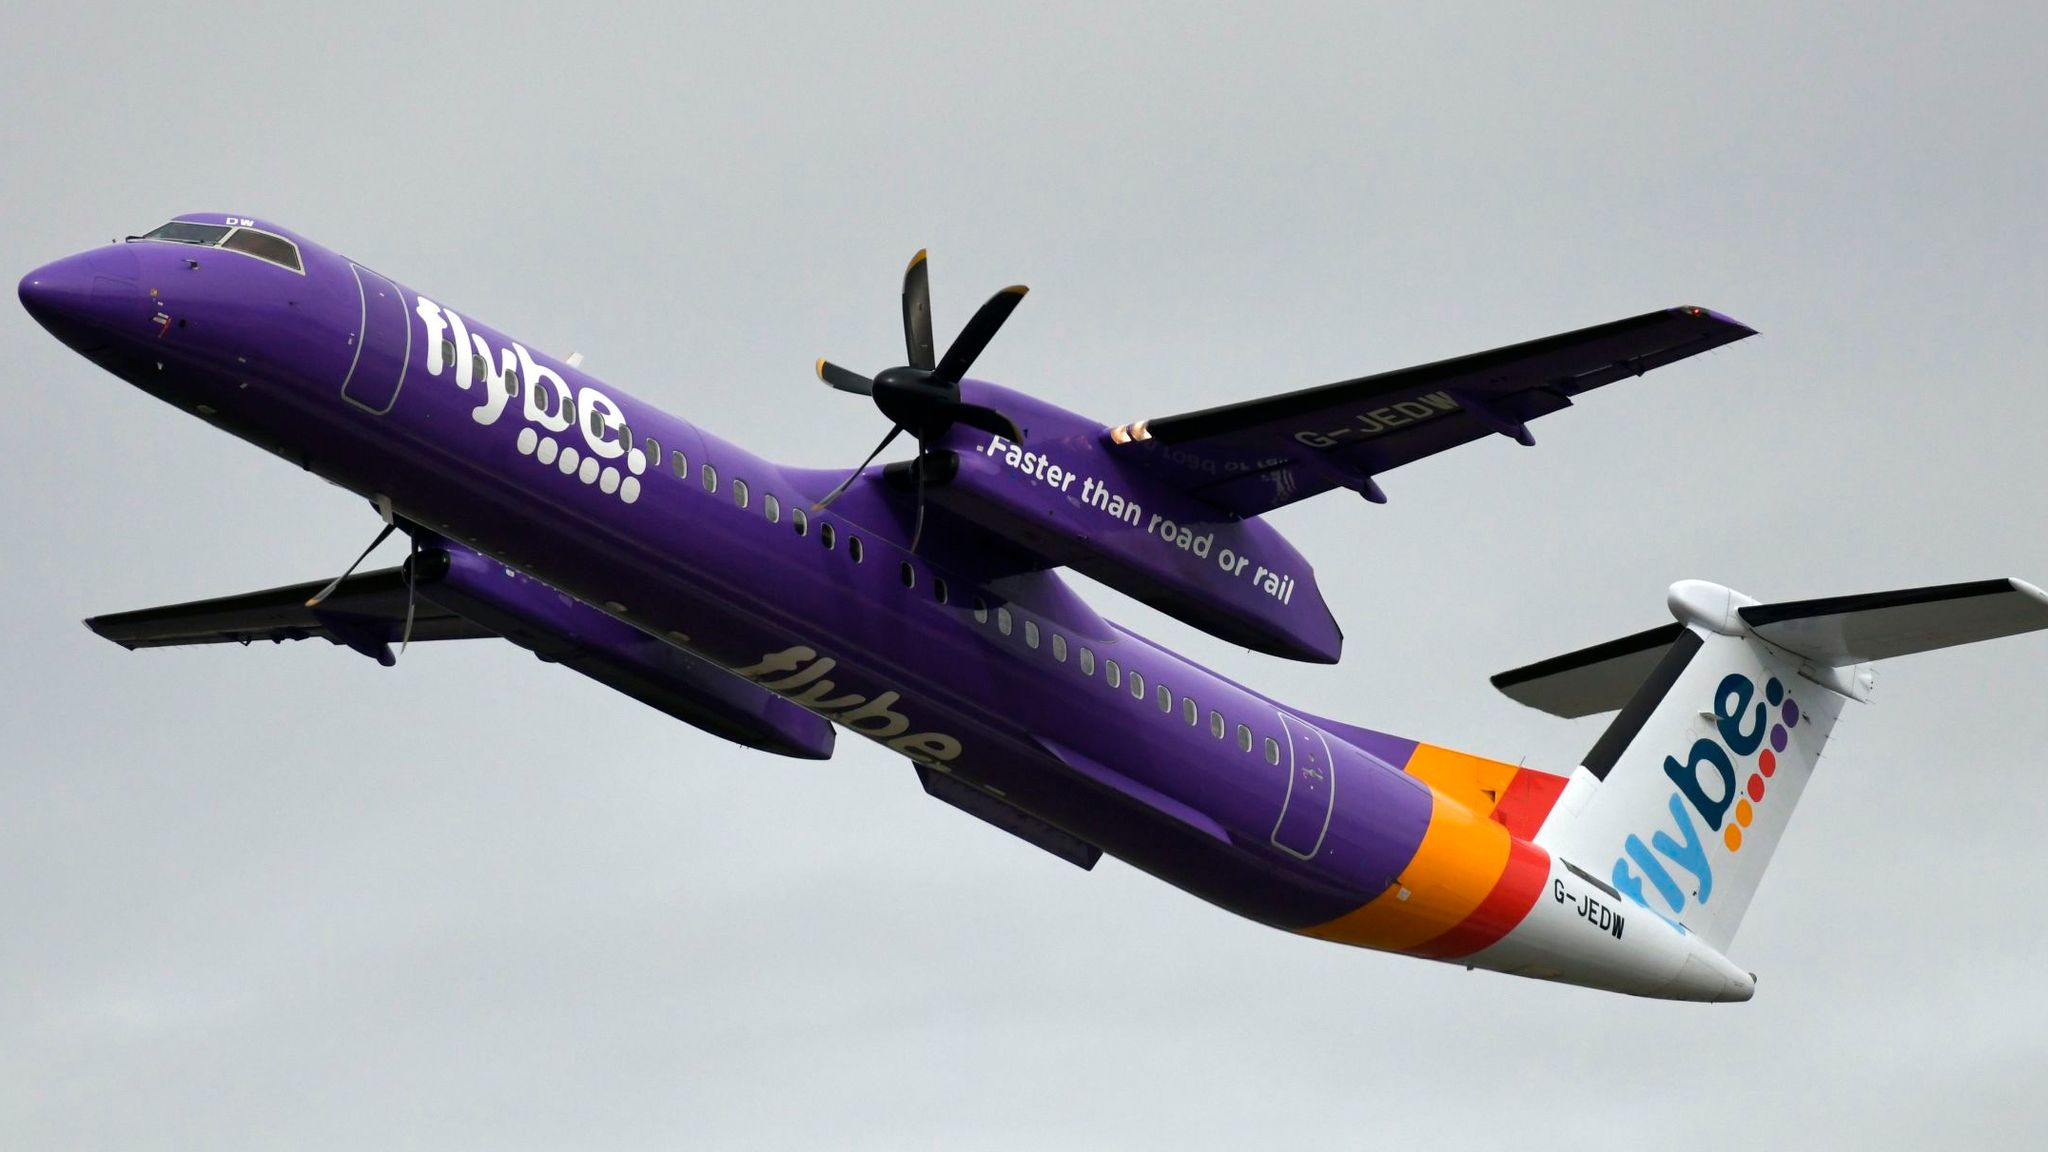 Flybe co-owner Stobart links airline's financial woes to EU 'delay'